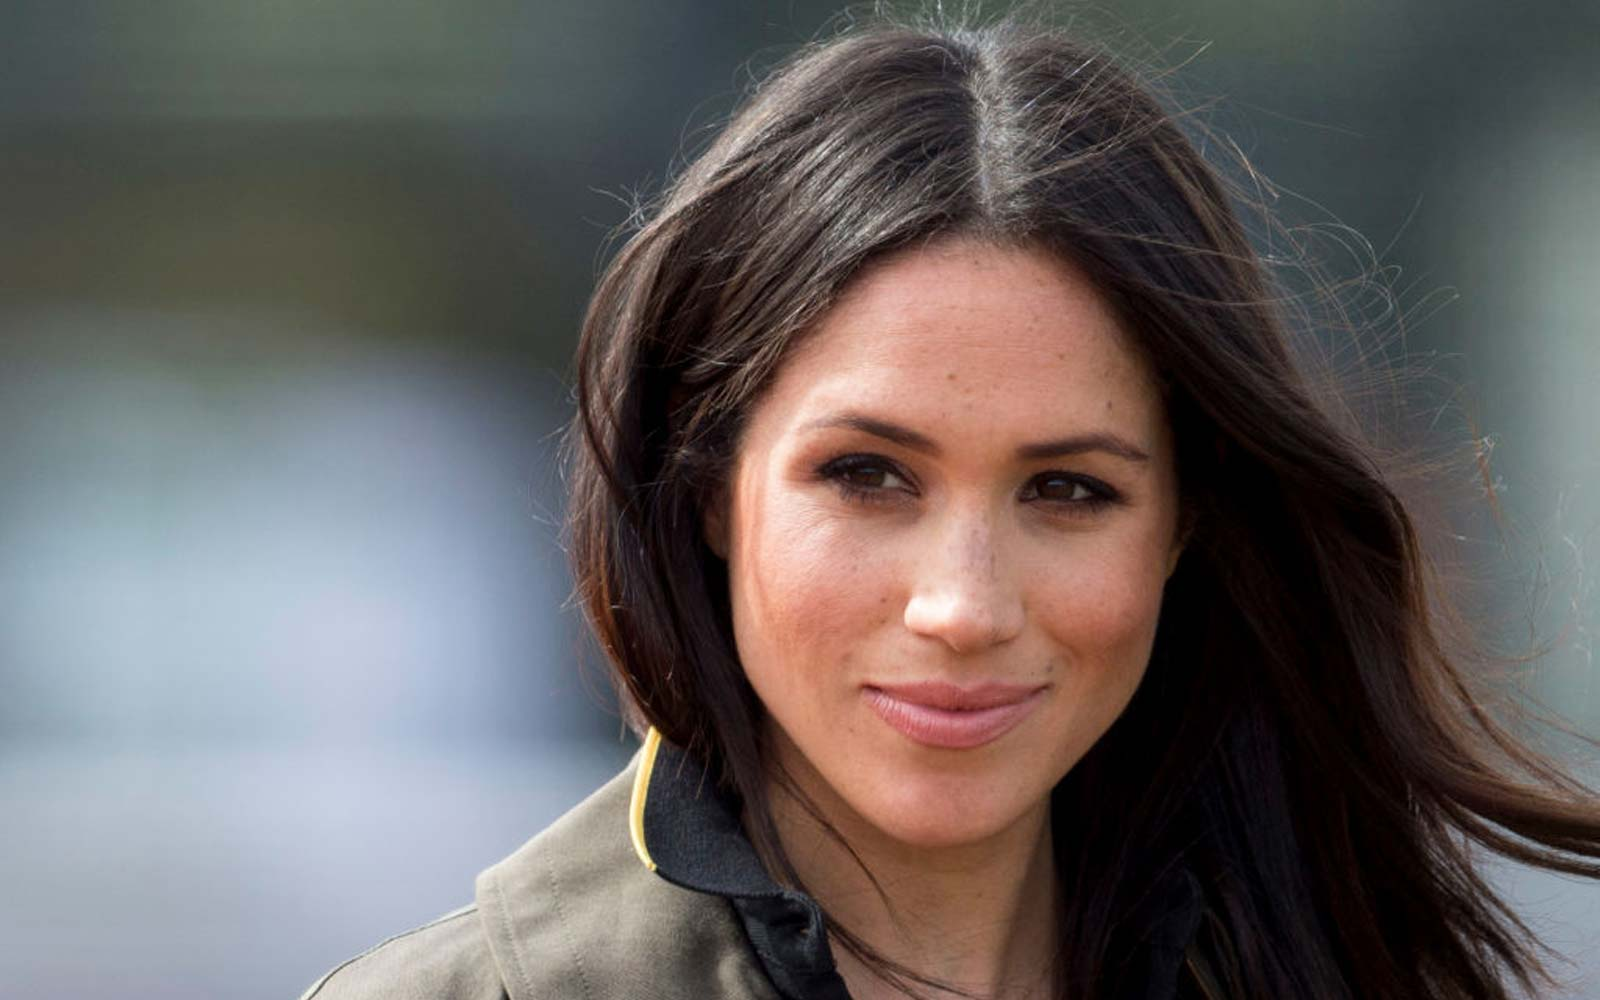 Meghan Markle attends the UK Team Trials for the Invictus Games Sydney 2018 at University of Bath